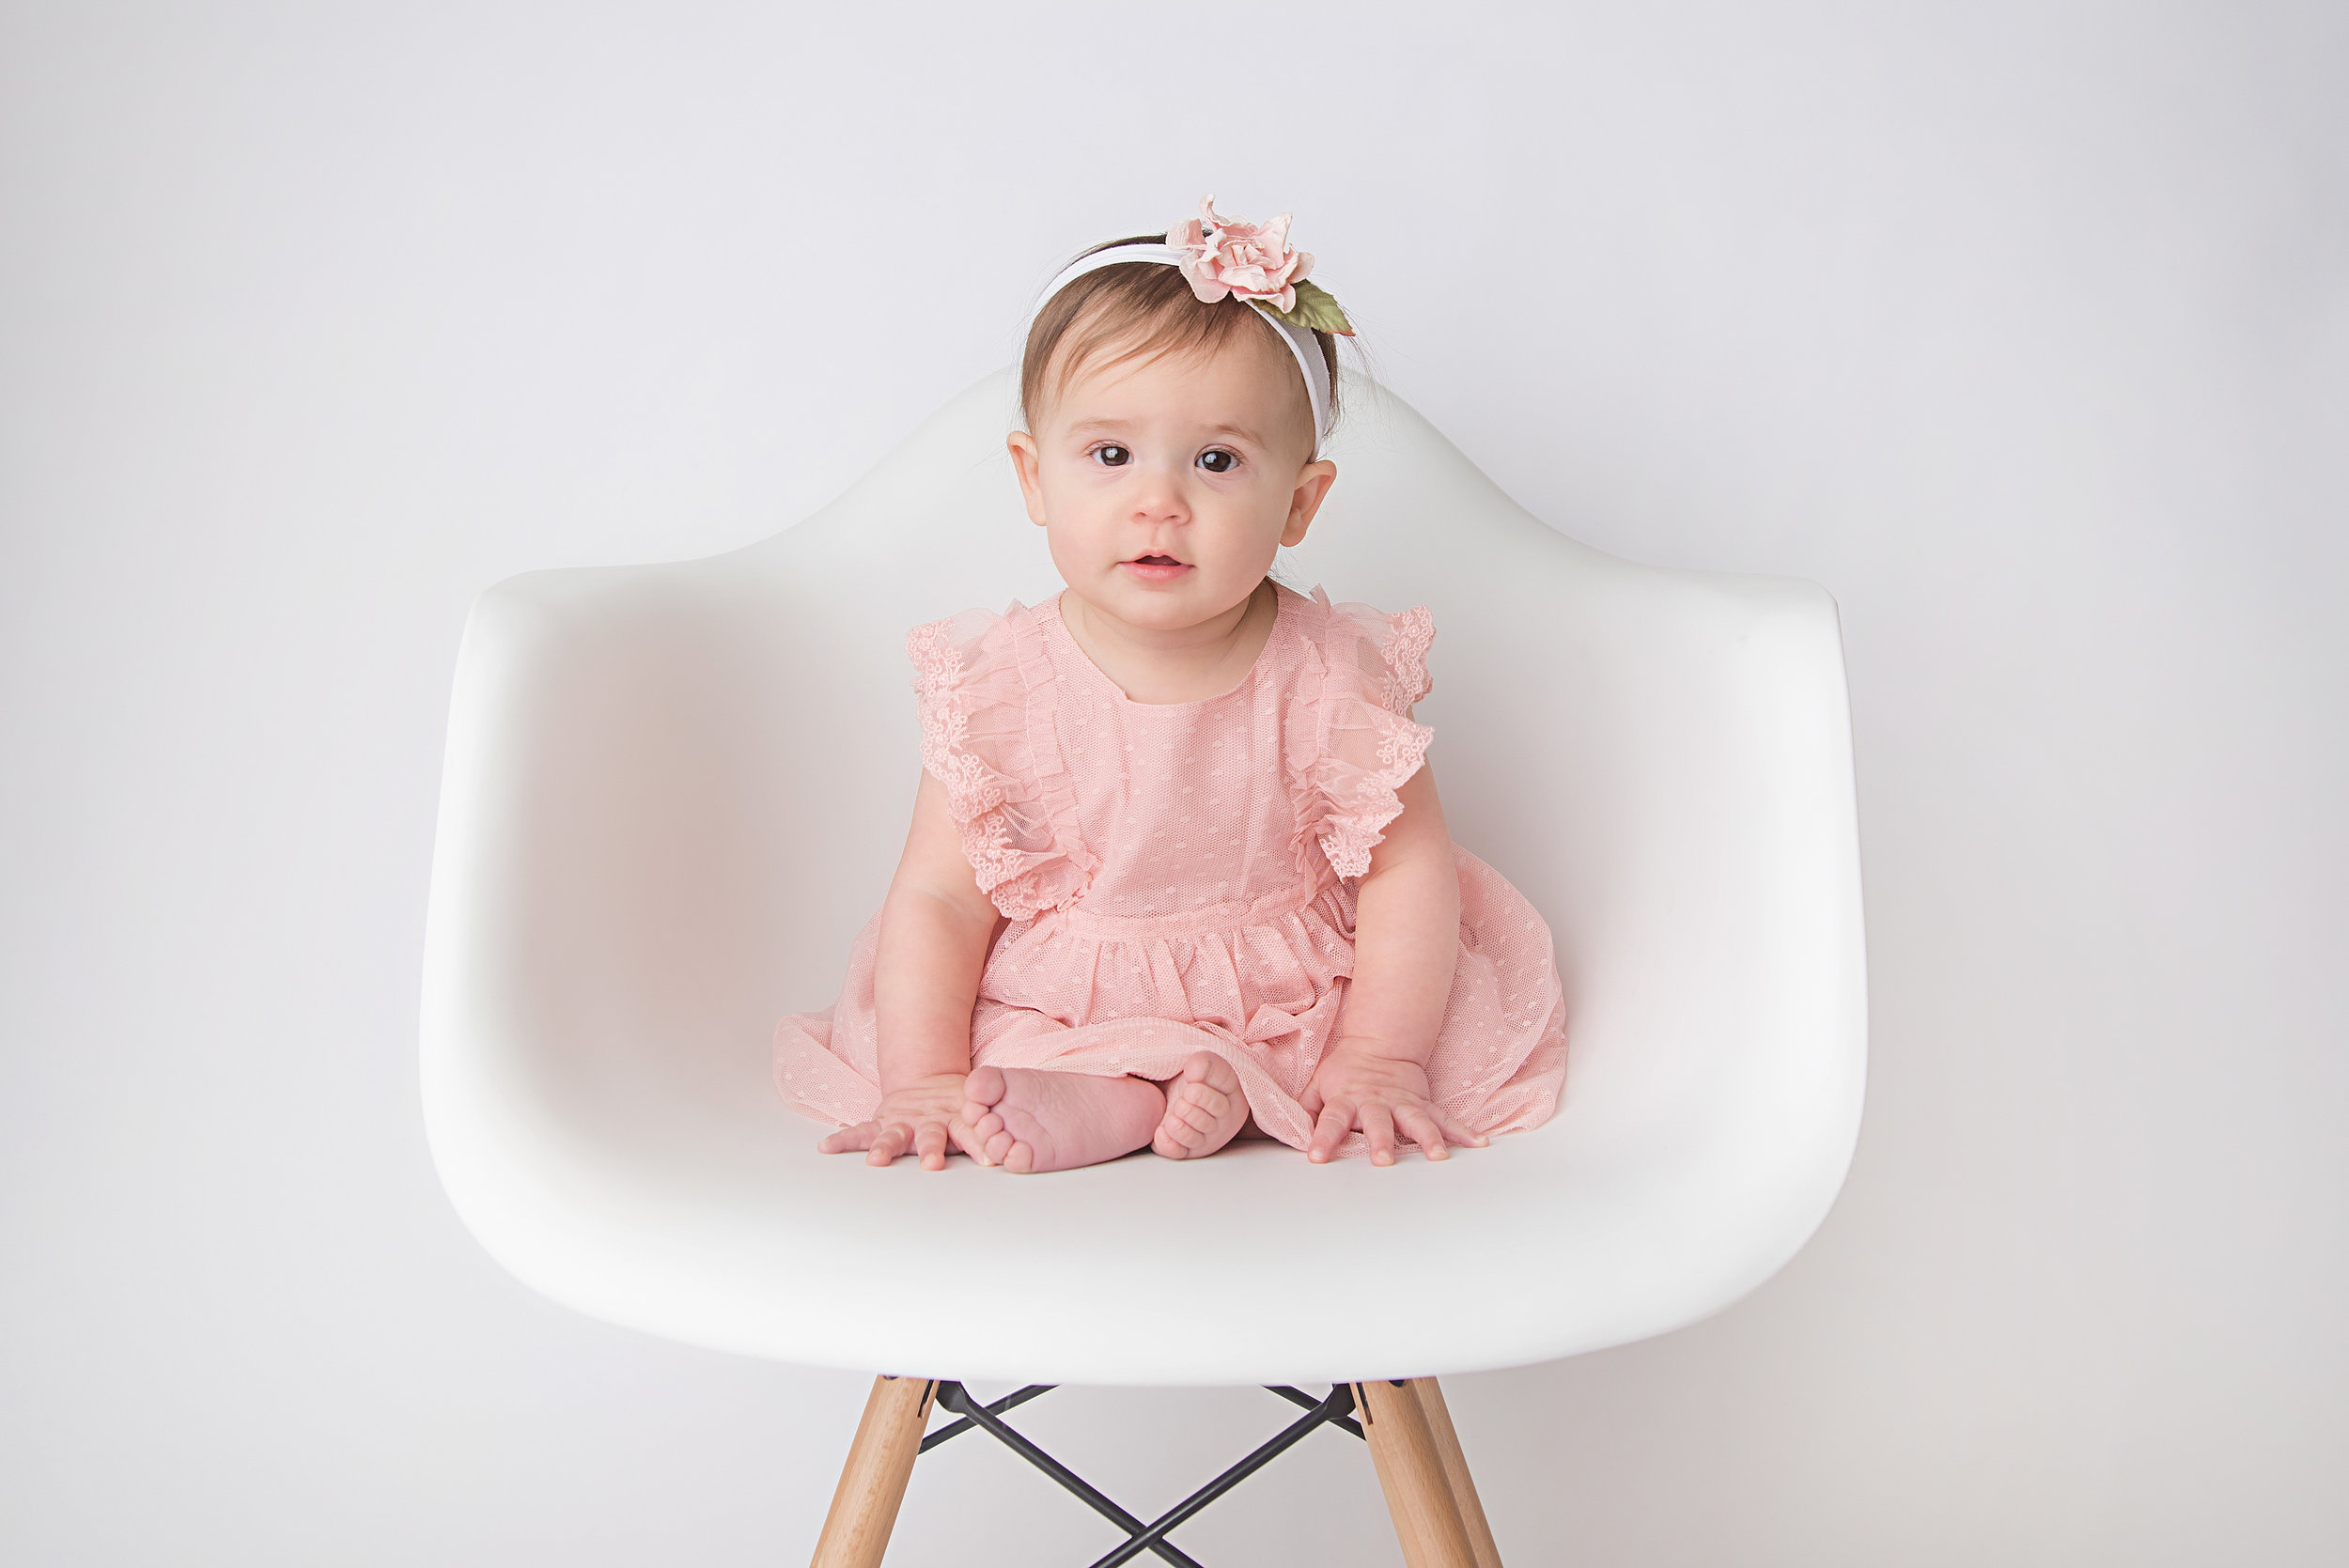 st-louis-baby-photographer-sitting-milestone-session-baby-girl-in-pink-dress-sitting-in-white-chair.jpg